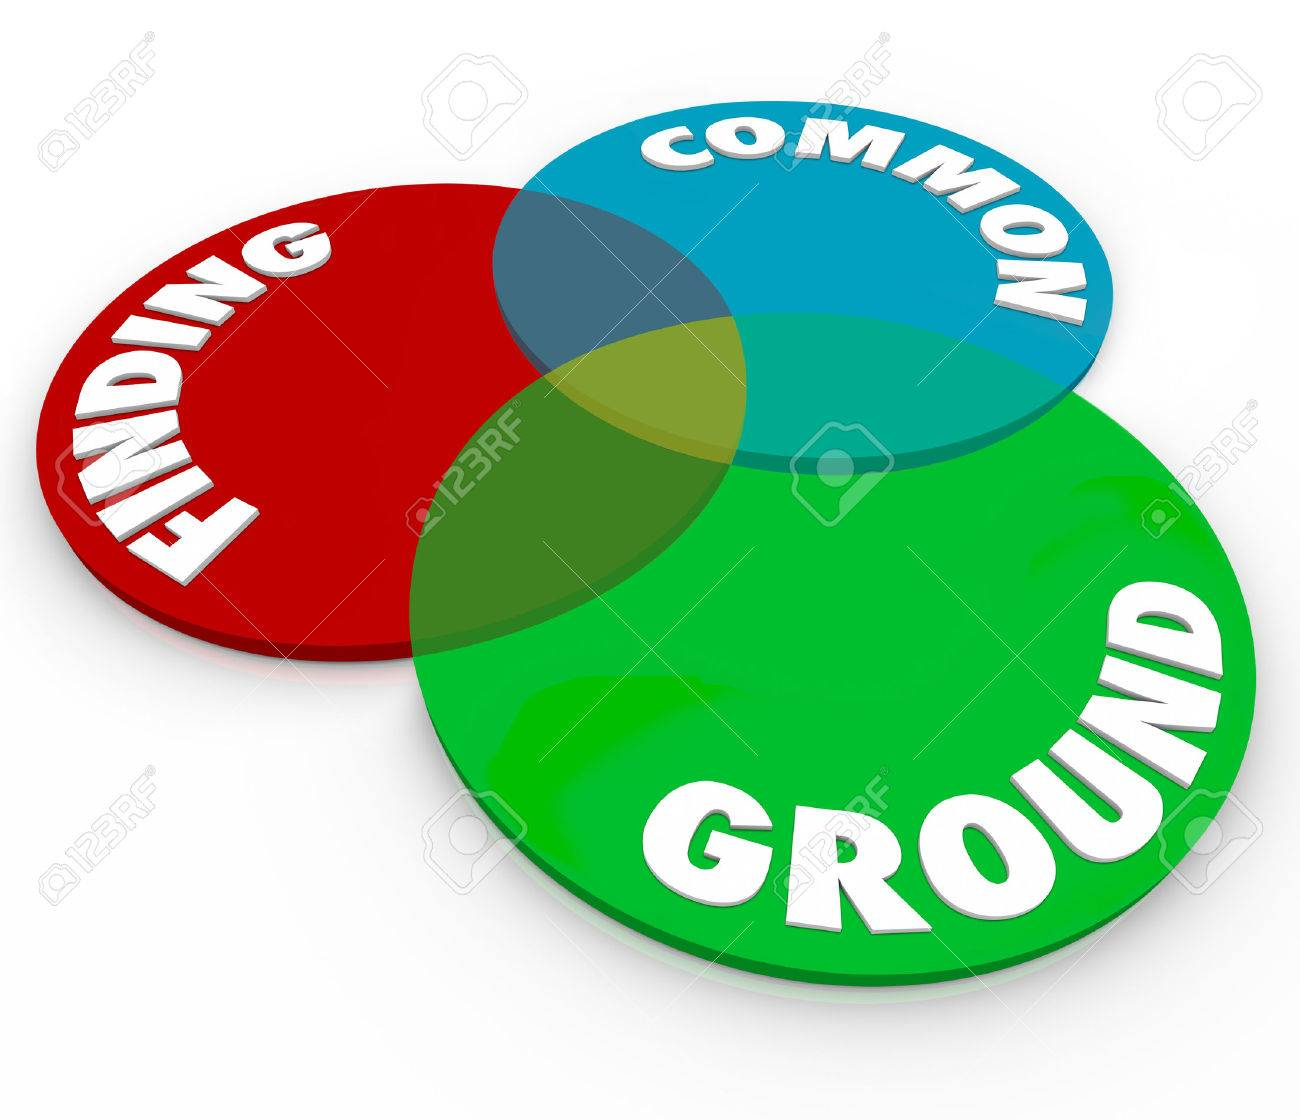 Finding common ground venn diagram of 3 overlapping circles finding common ground venn diagram of 3 overlapping circles illustrating shared interests or mutual benefits imagens ccuart Image collections